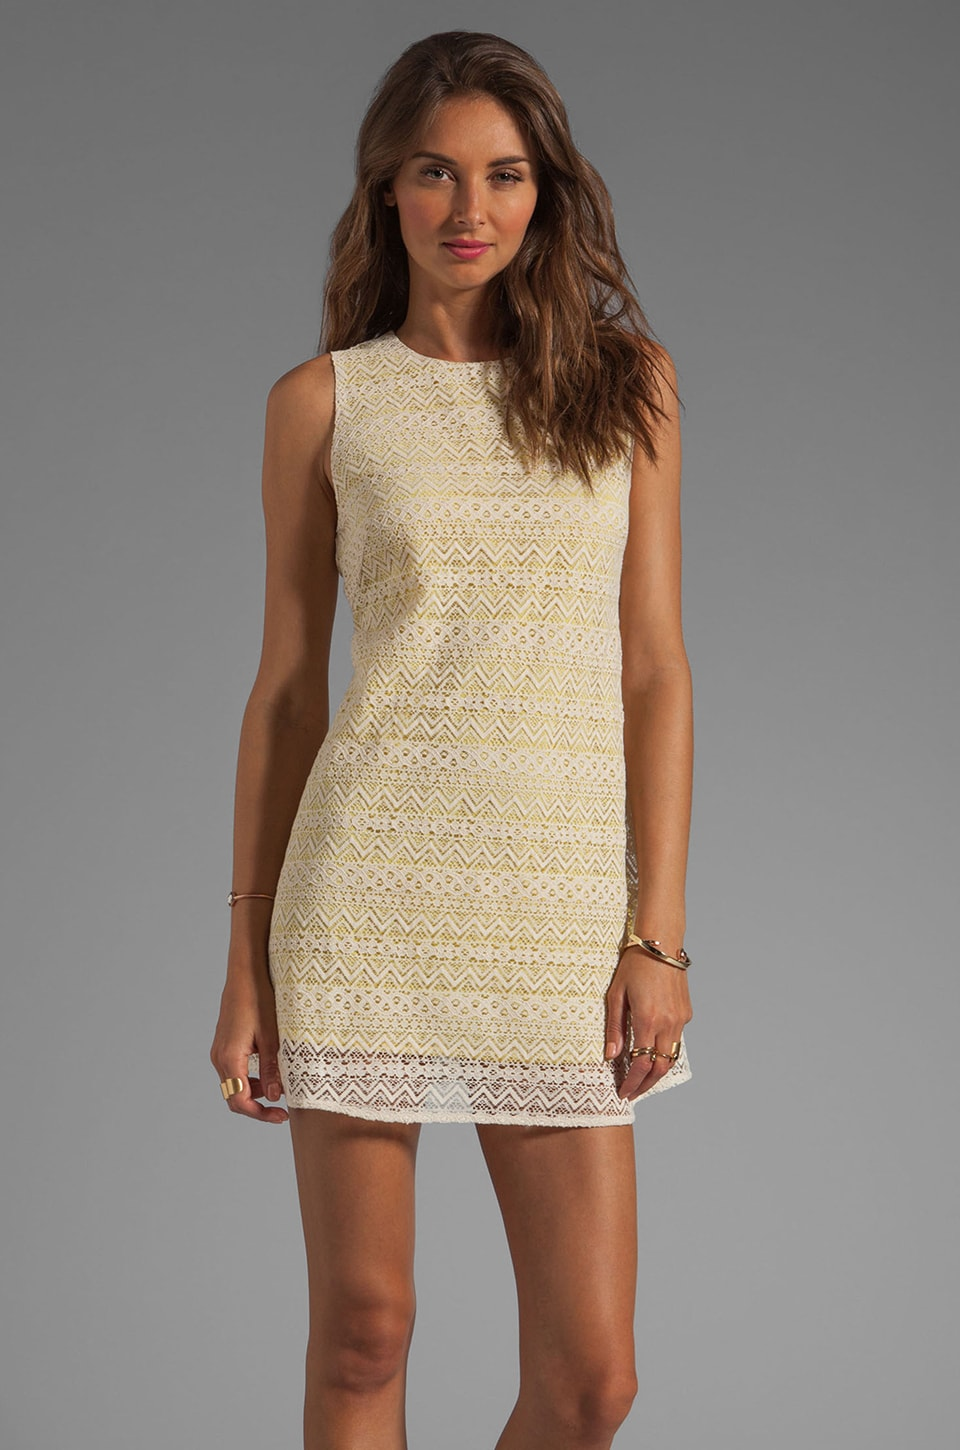 JARLO Tara Lace Tank Dress in Yellow